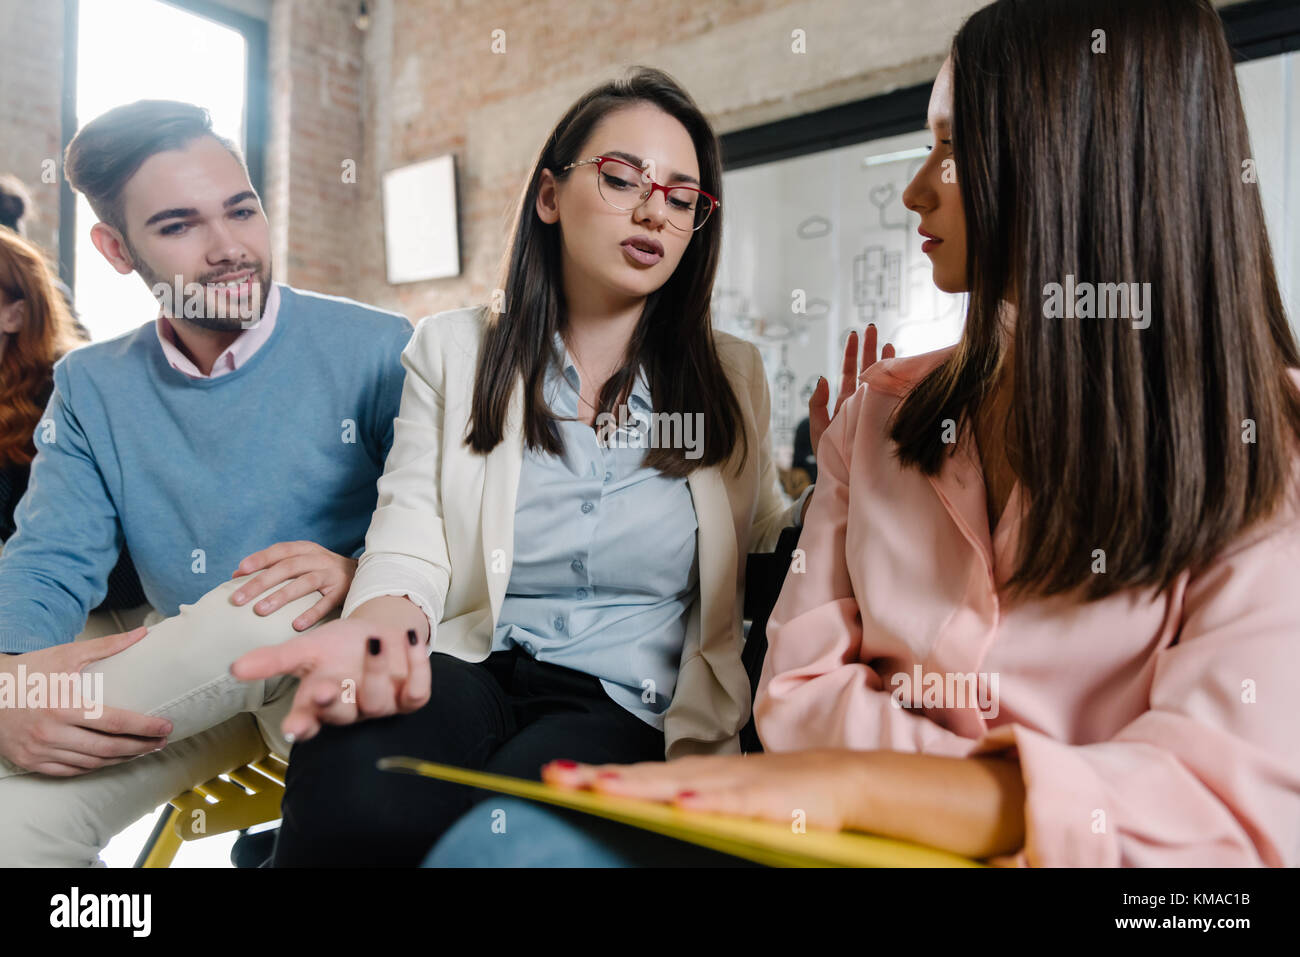 Job candidates talking before their interview Stock Photo